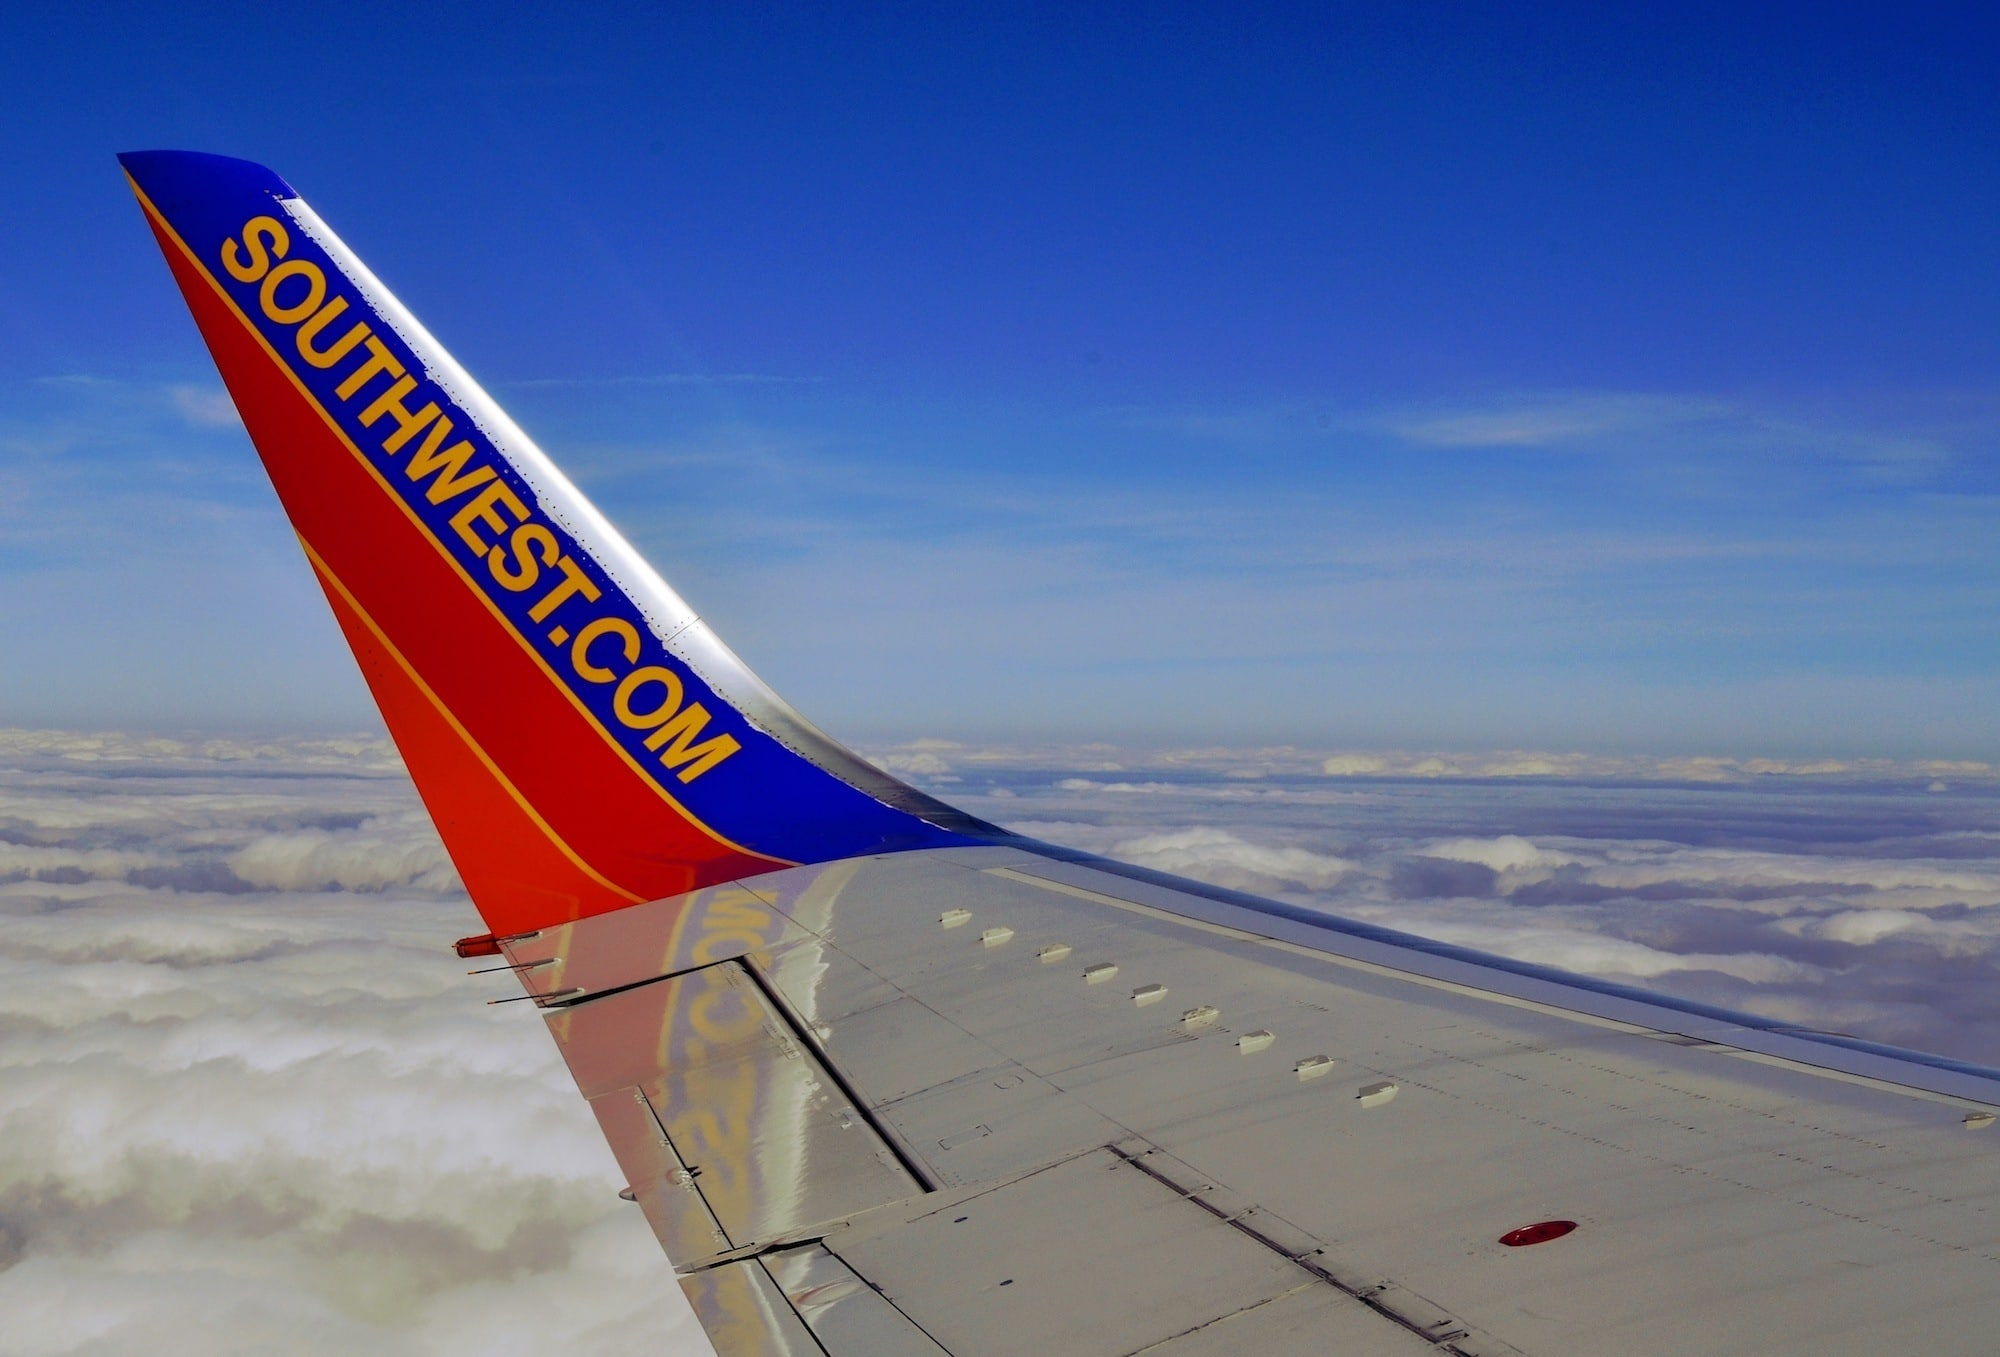 How to score free flights on Southwest in 4 simple steps